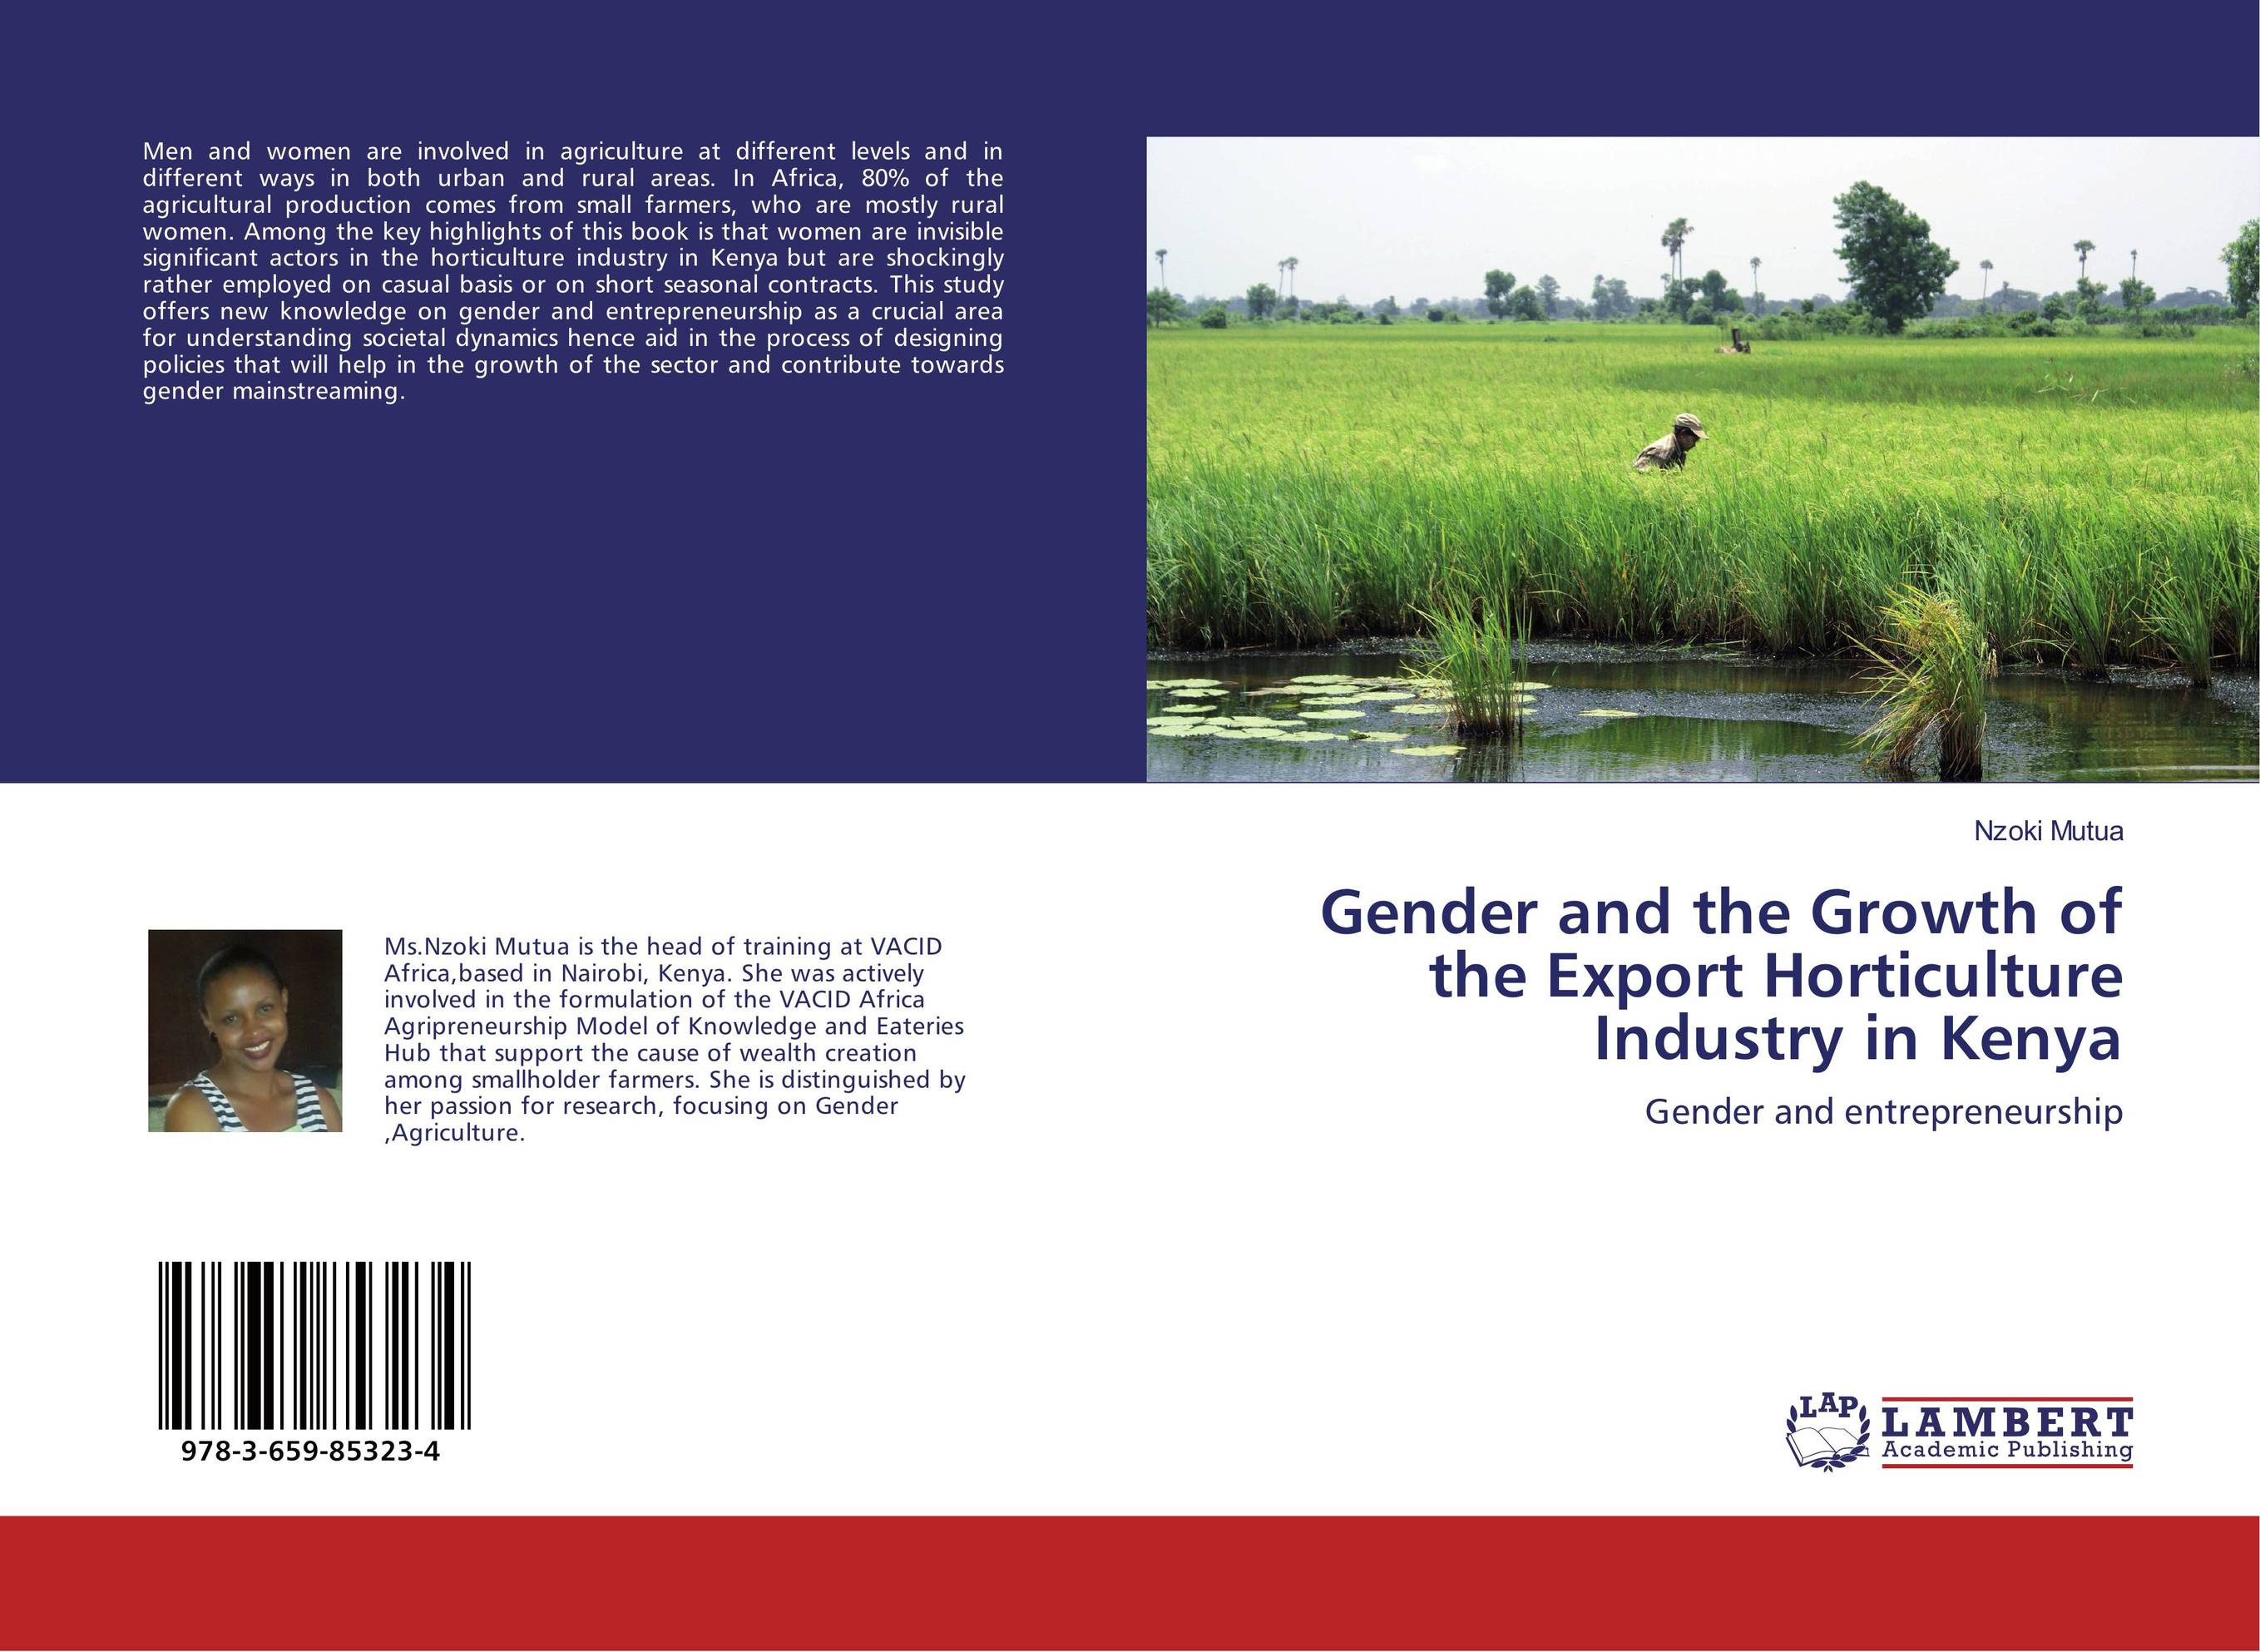 Gender and the Growth of the Export Horticulture Industry in Kenya